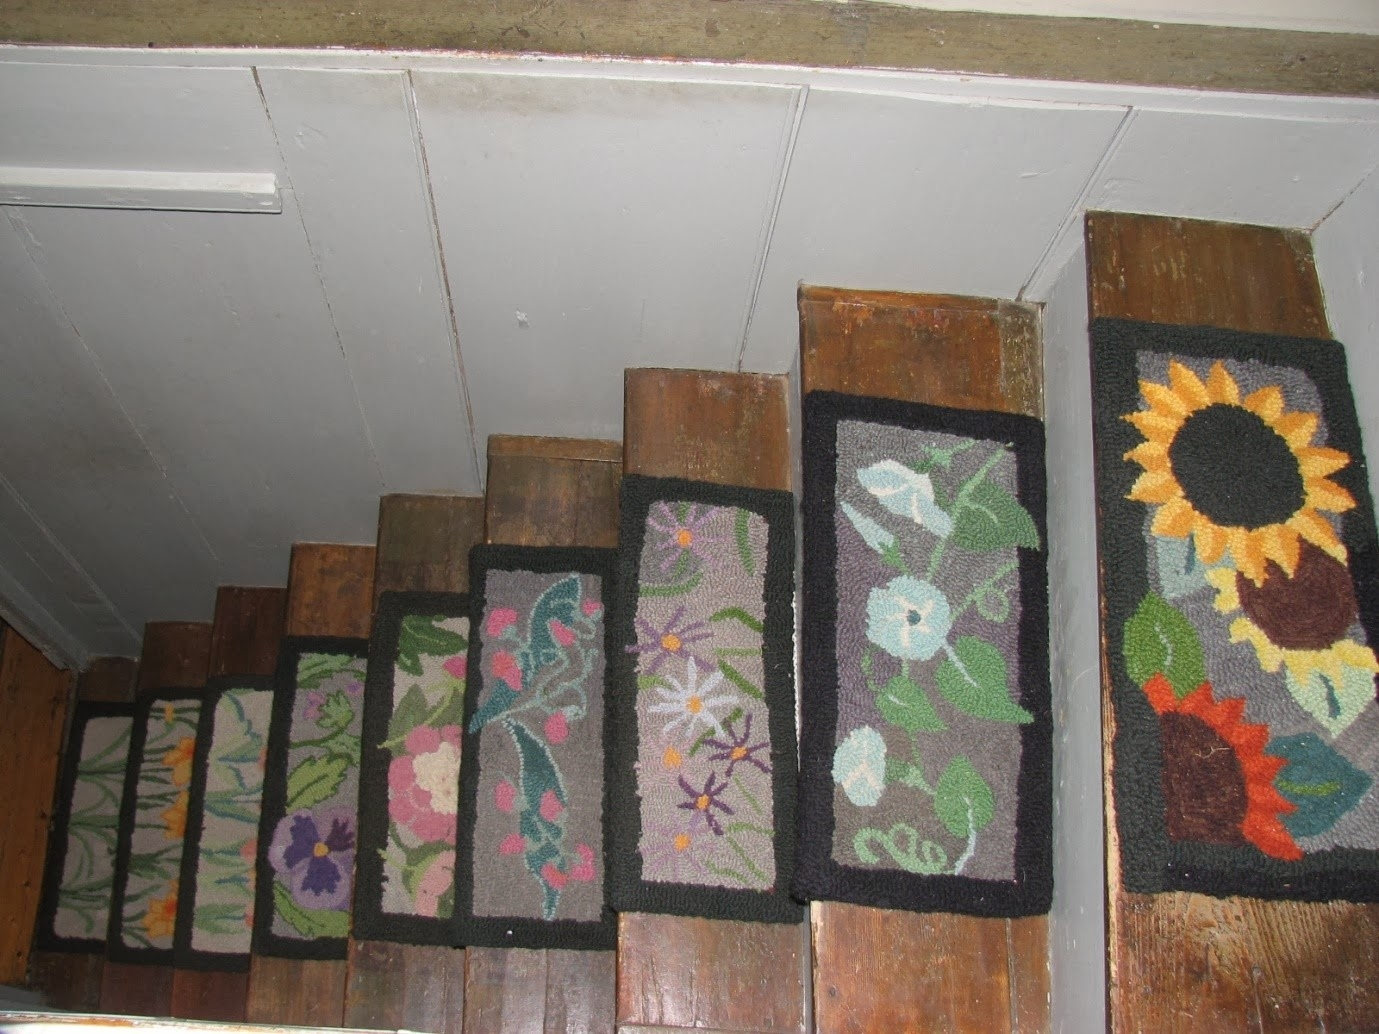 Stair Tread Covers Ideas About Stair Treads On Pinterest Carpet Intended For Rustic Stair Tread Rugs (#17 of 20)